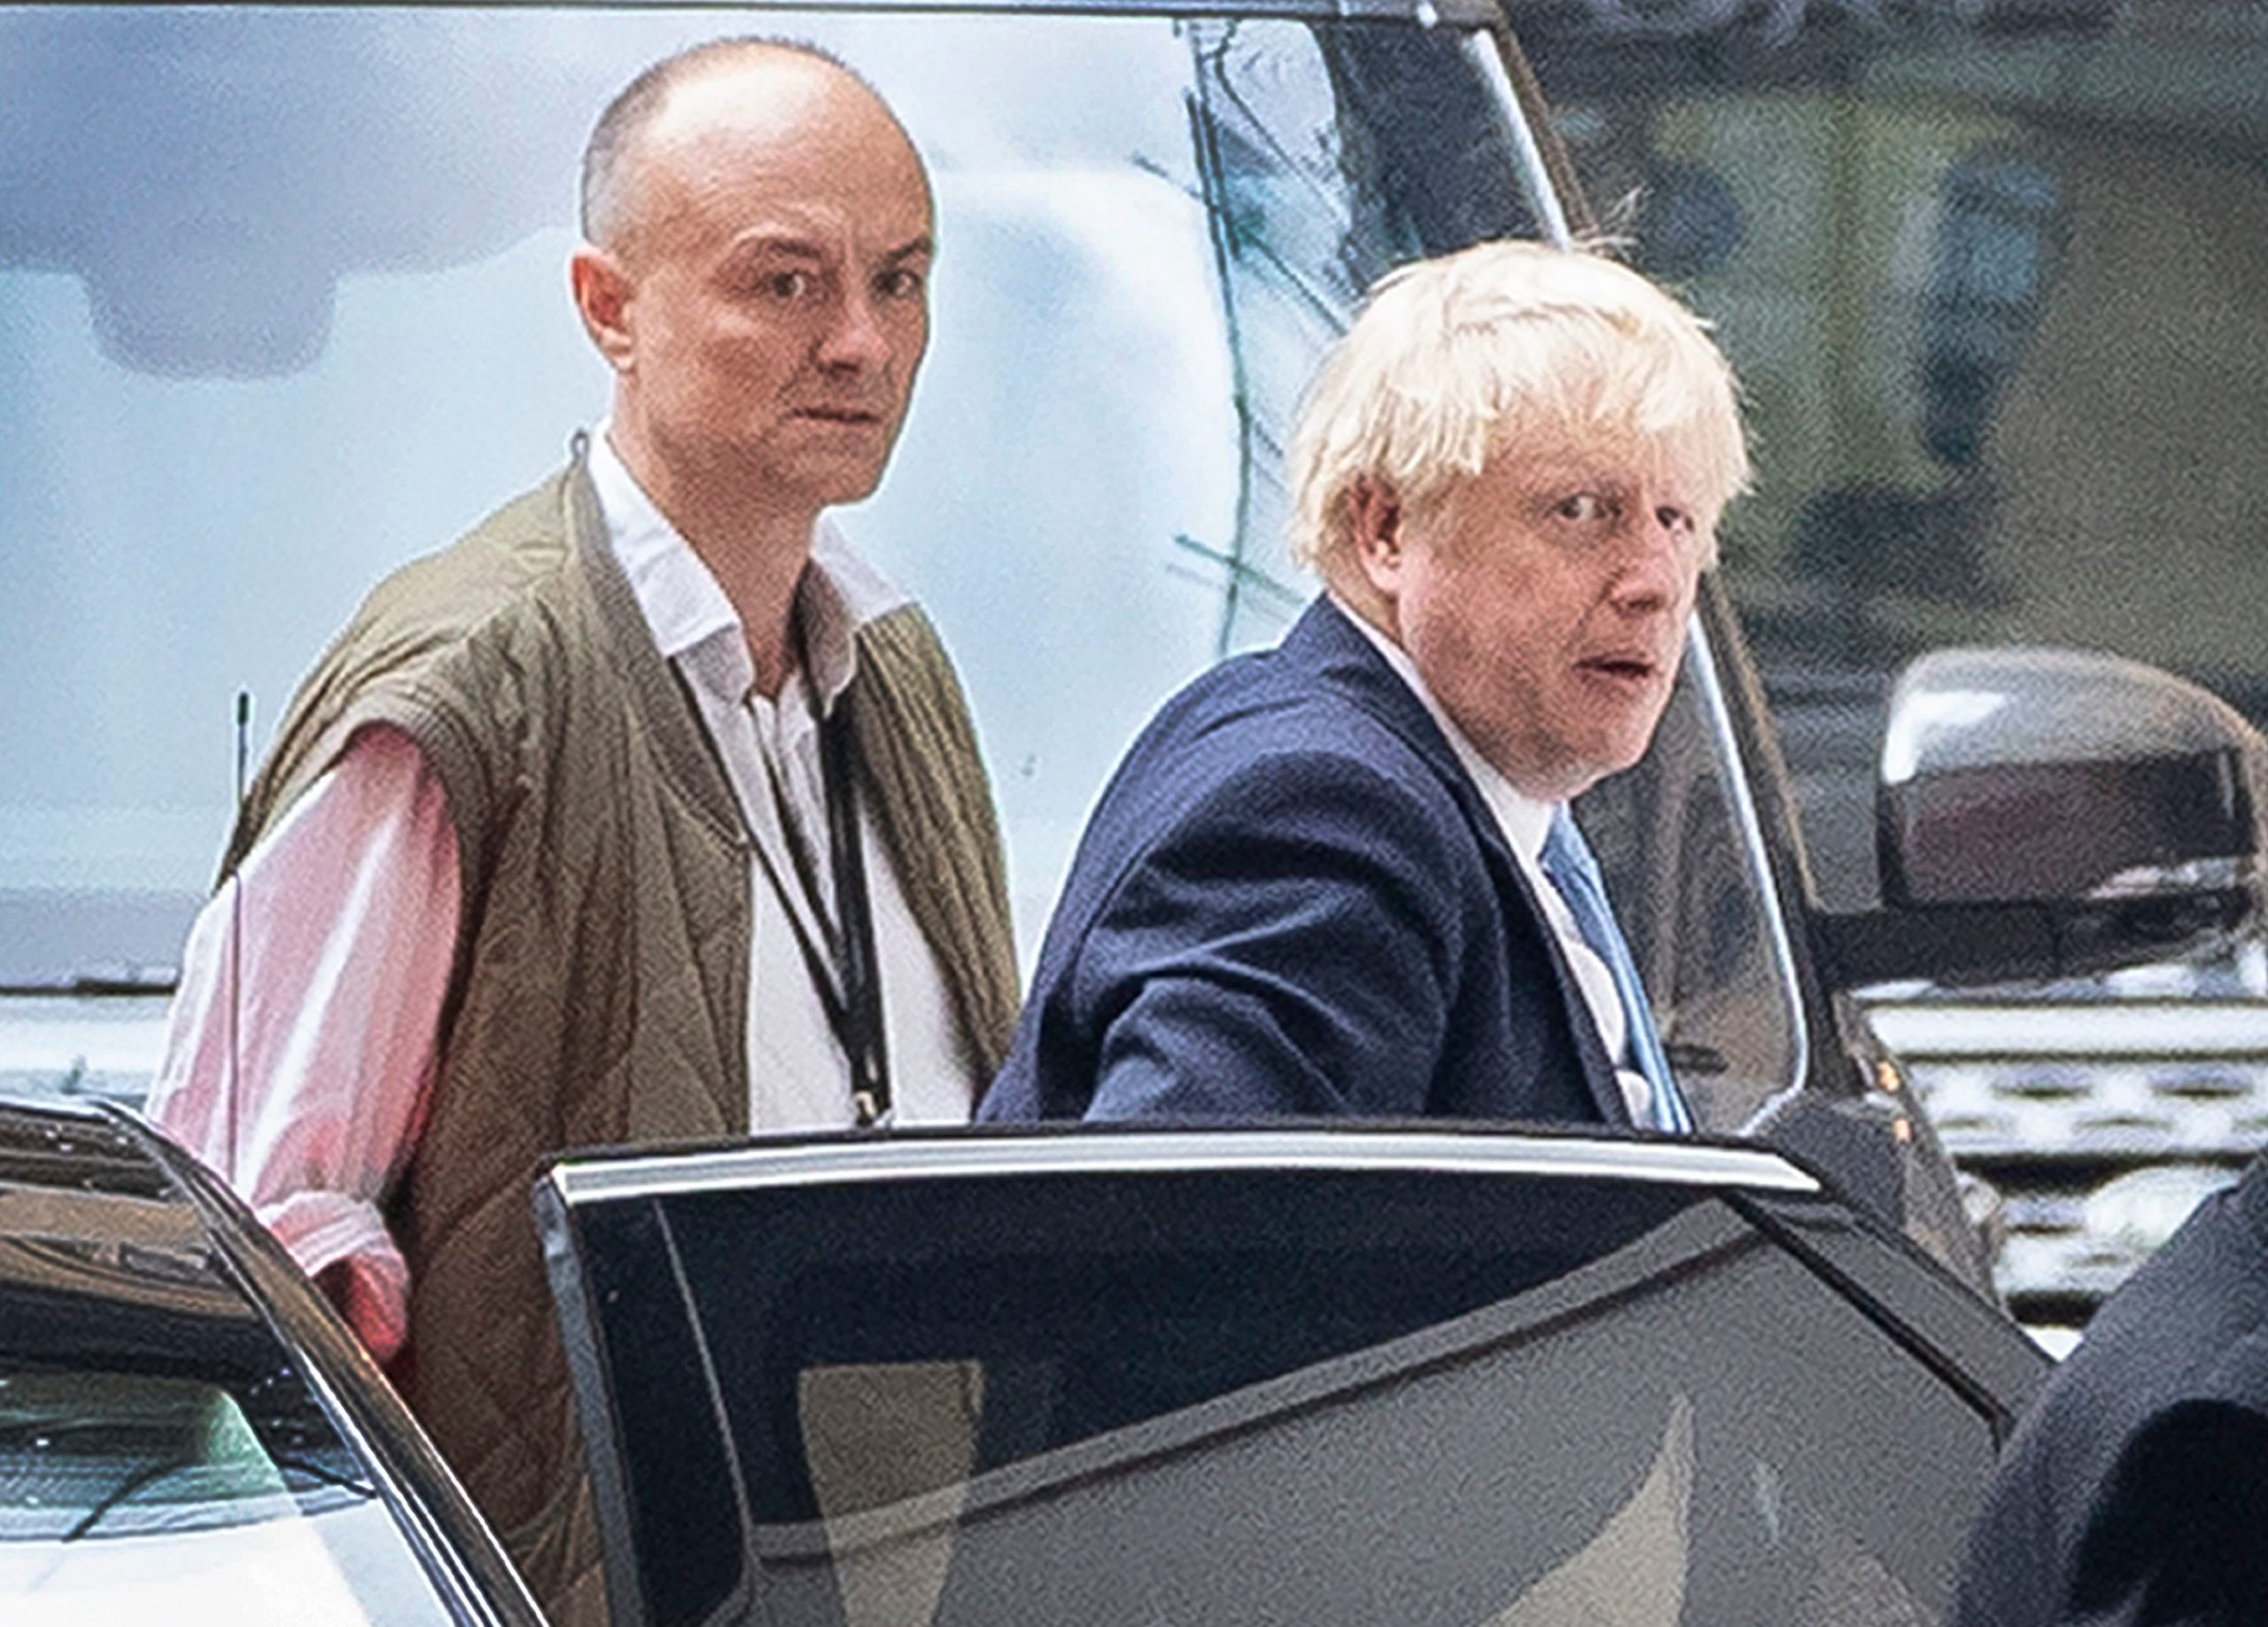 Prime Minister Boris Johnson arrives at Parliament with his special advisor Dominic Cummings.